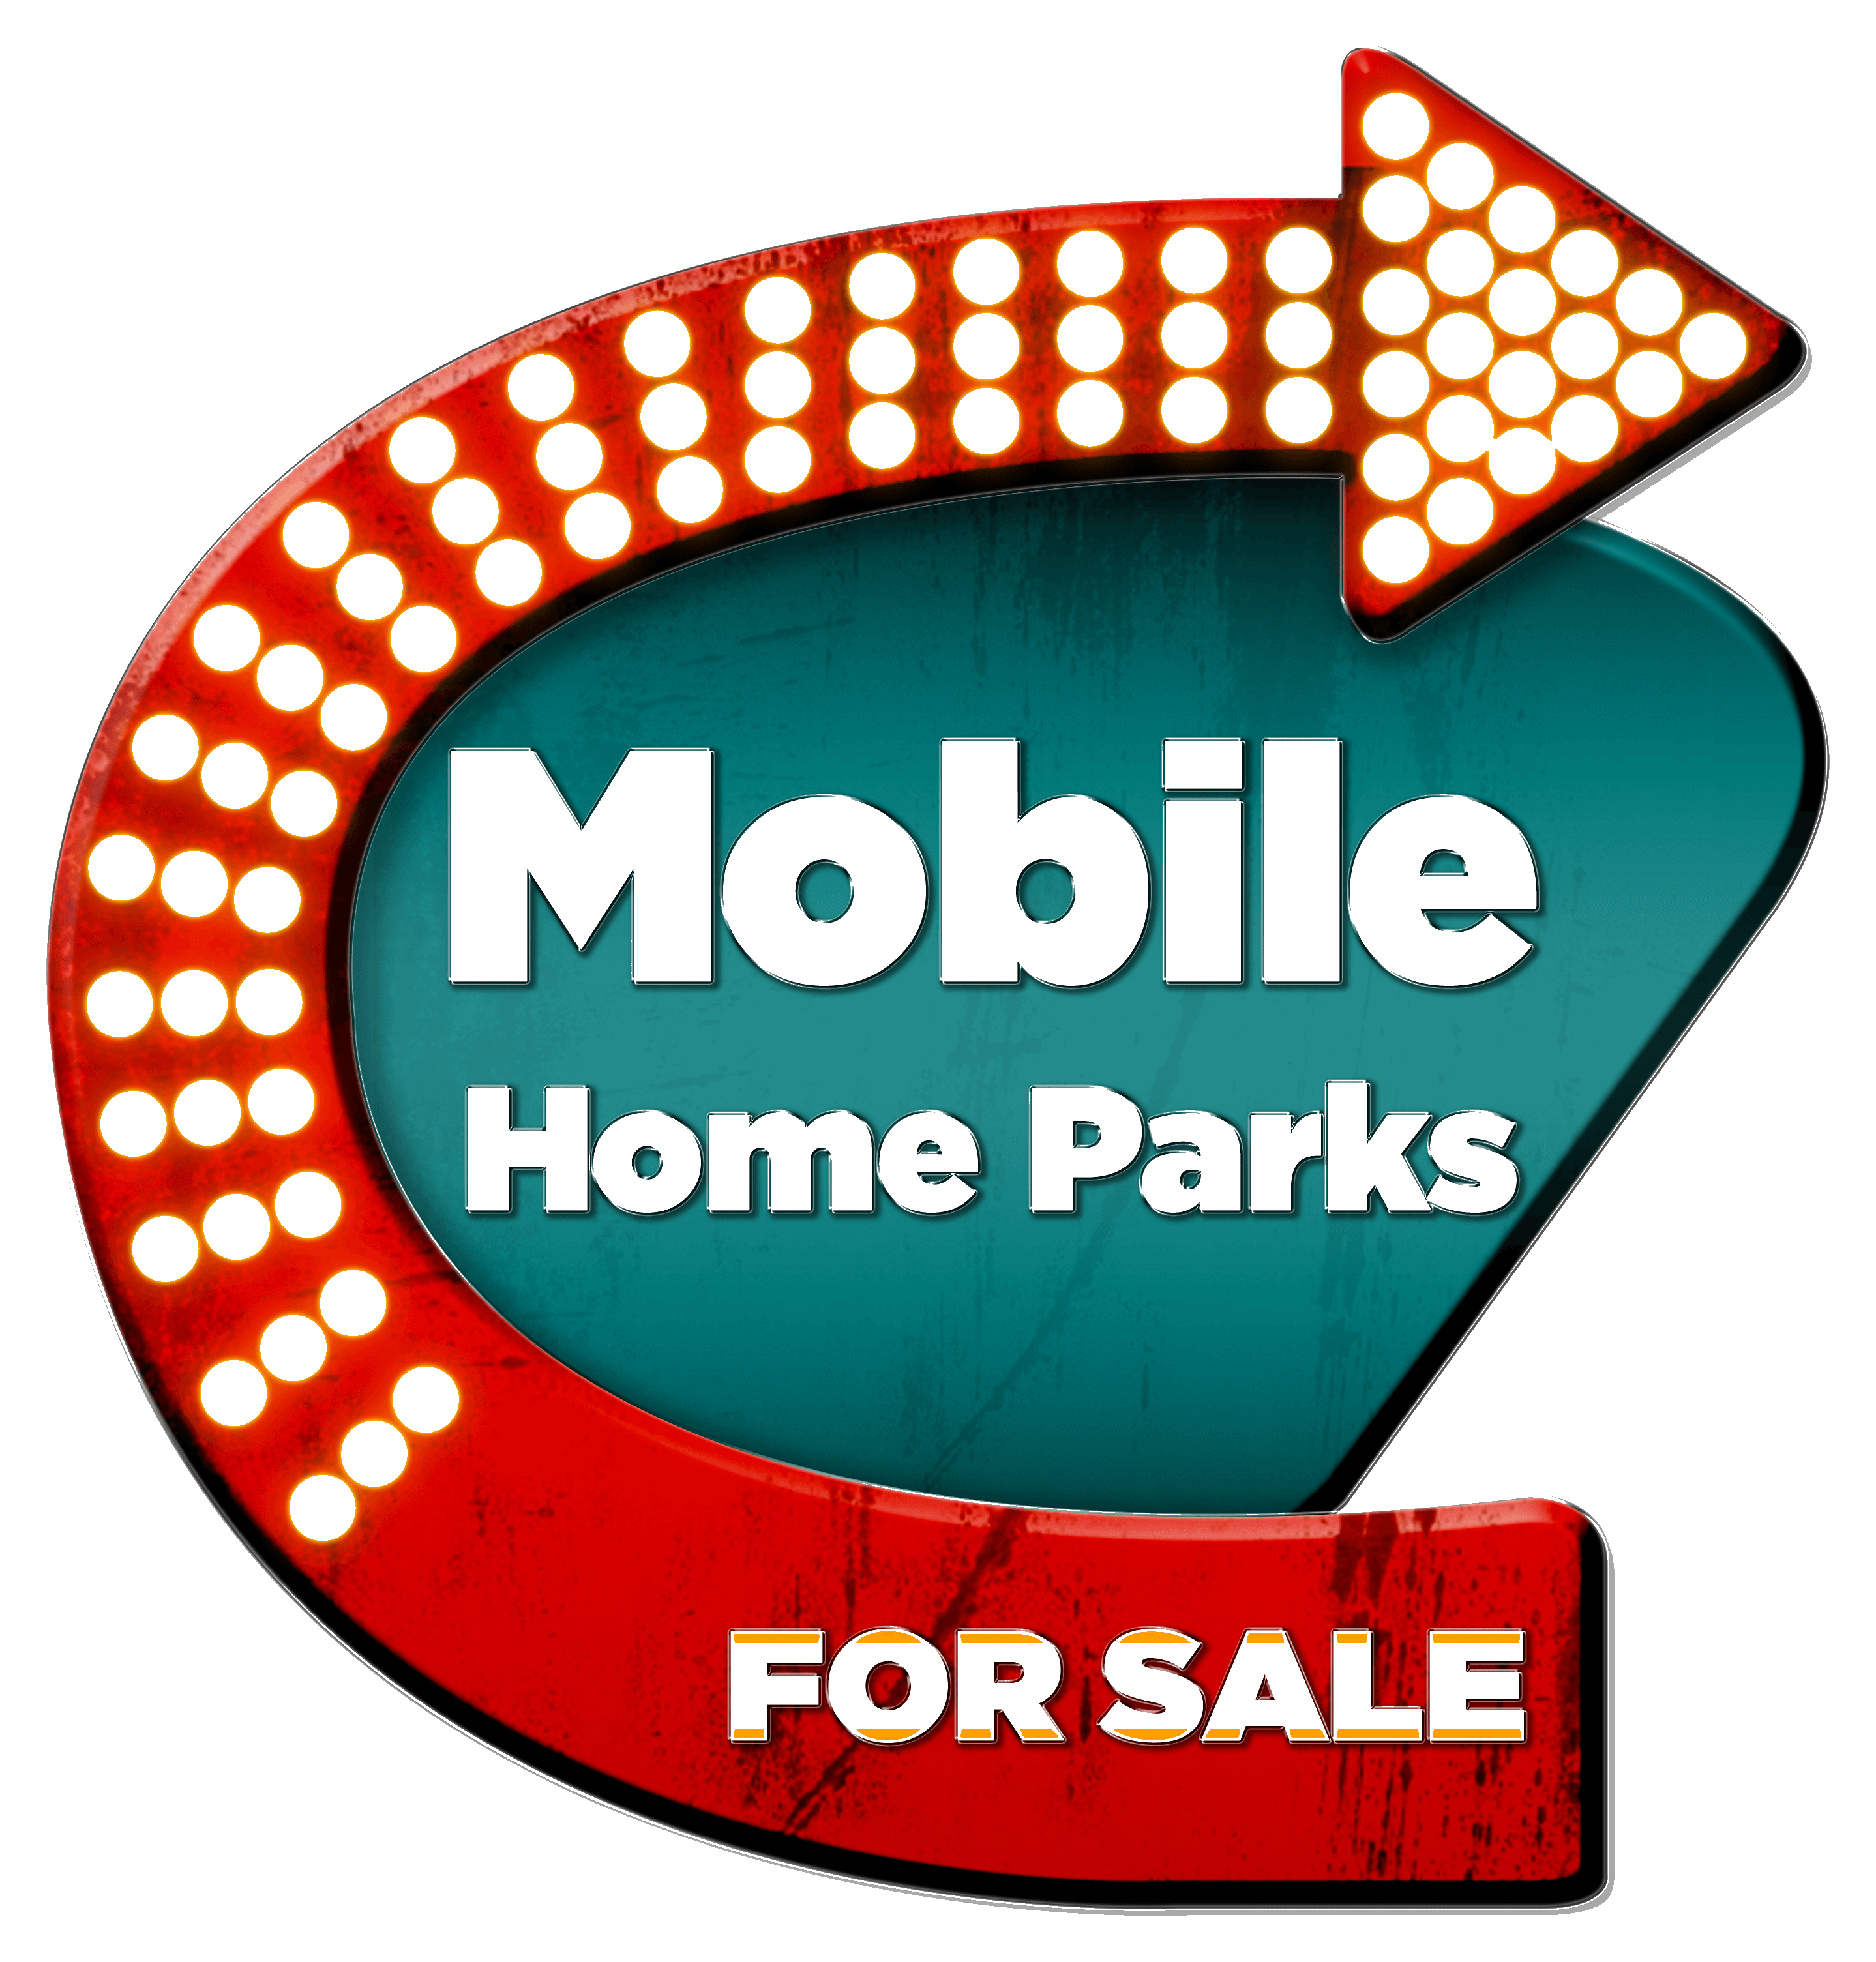 Mobile Home Parks For Sale